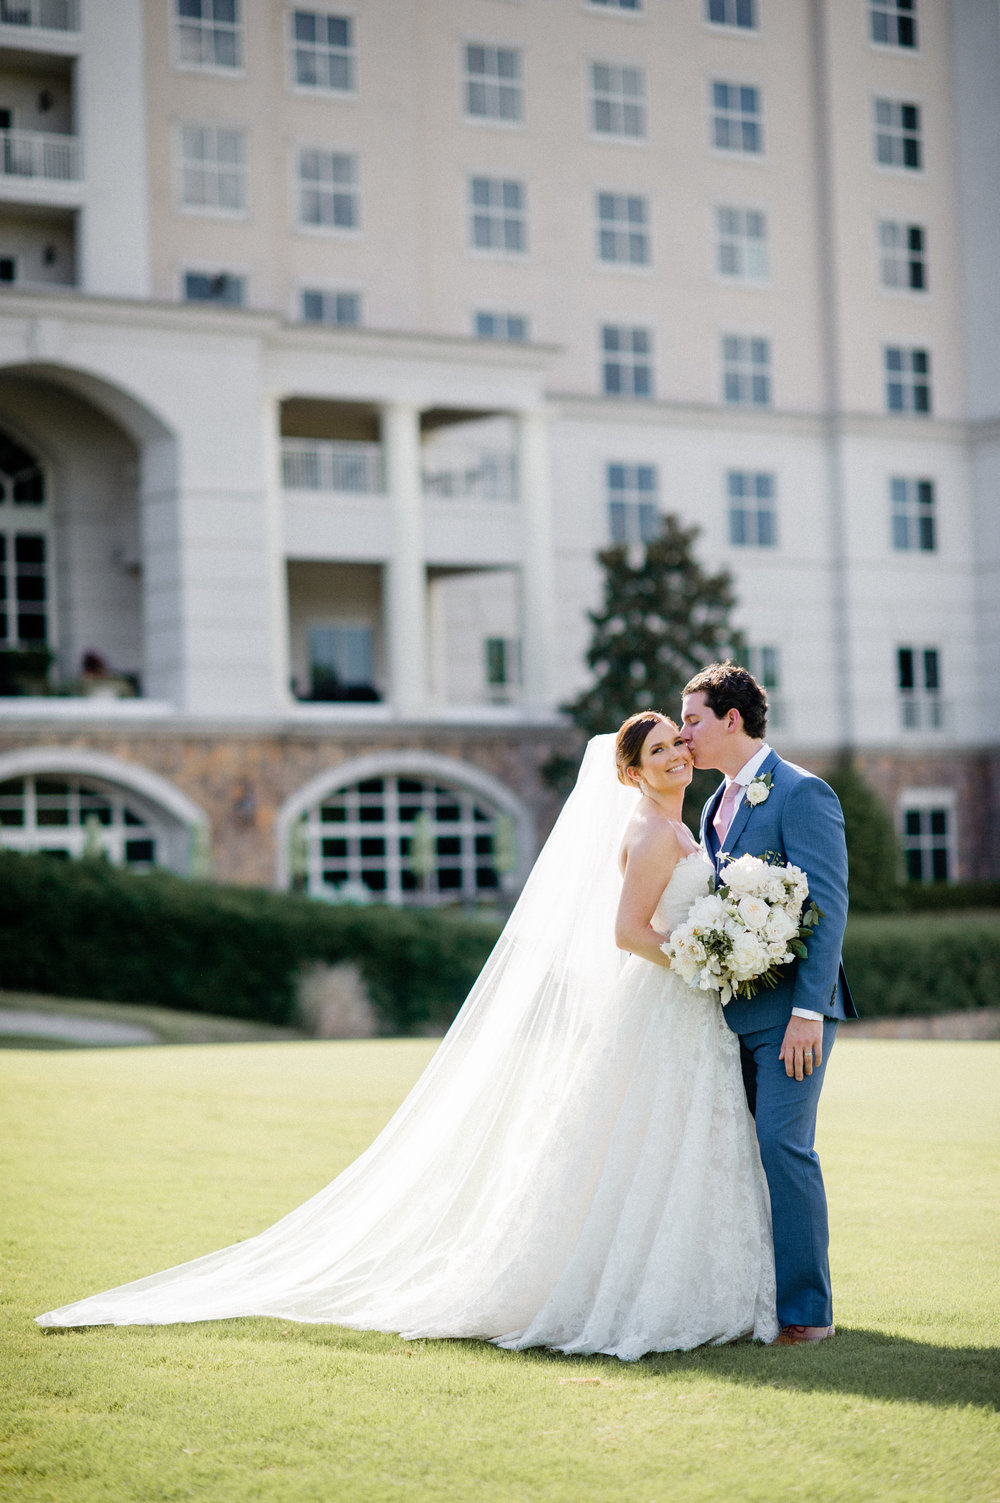 Katie + Jack - The Ballantyne HotelComing soon!